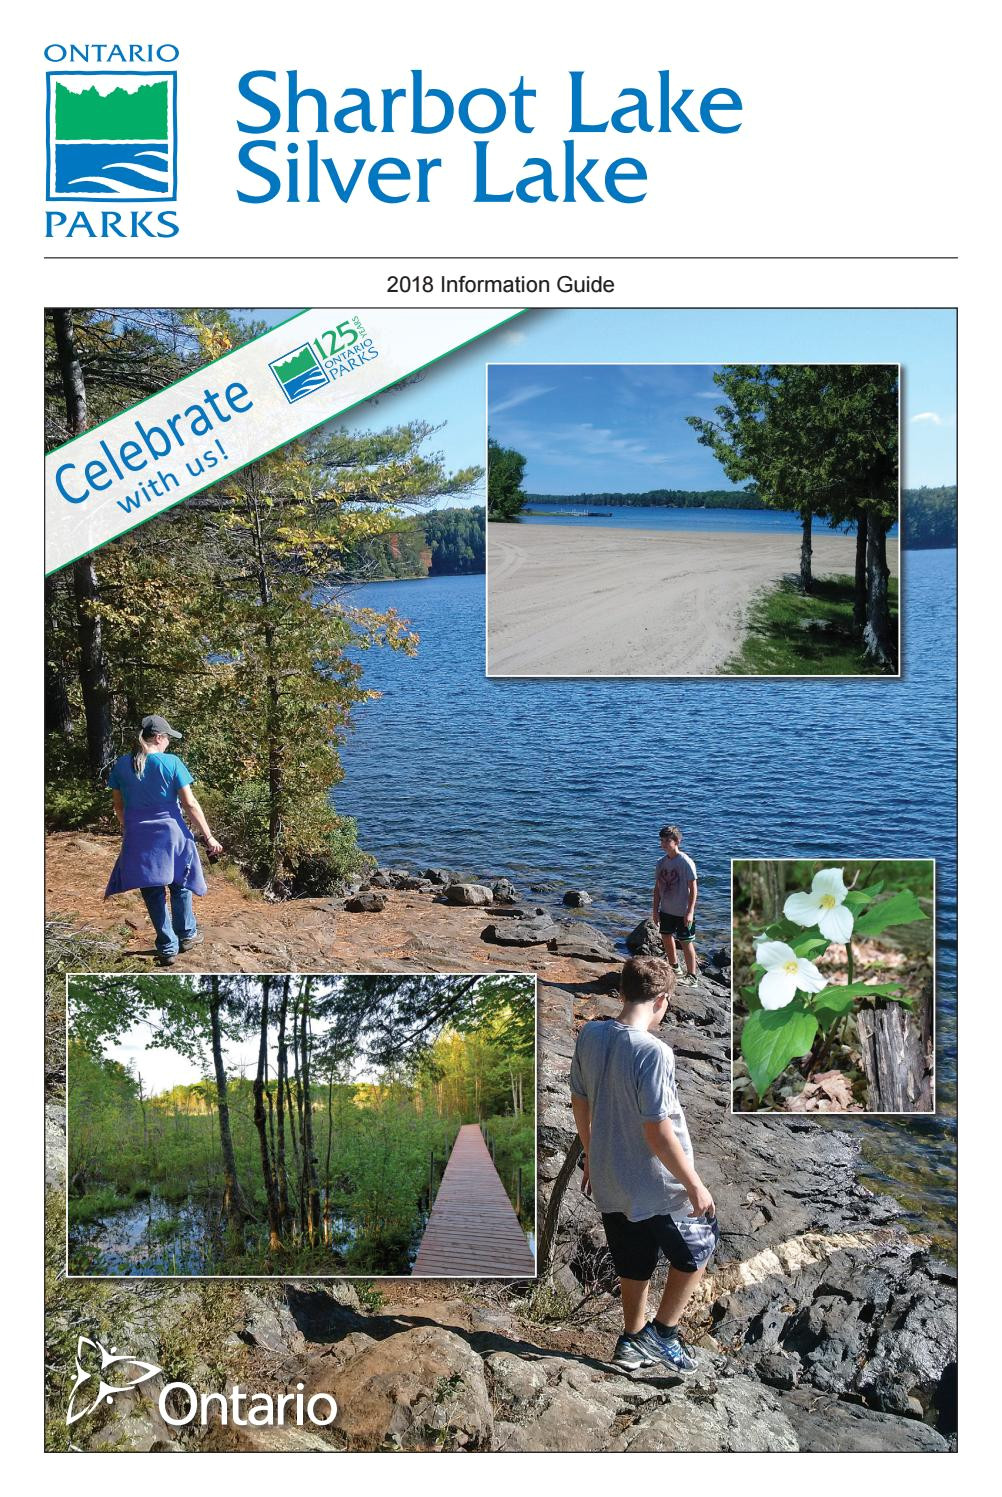 Silver Stag Woods and Water Sharbot Lake Silver Lake Provincial Park 2018 Information Guide by